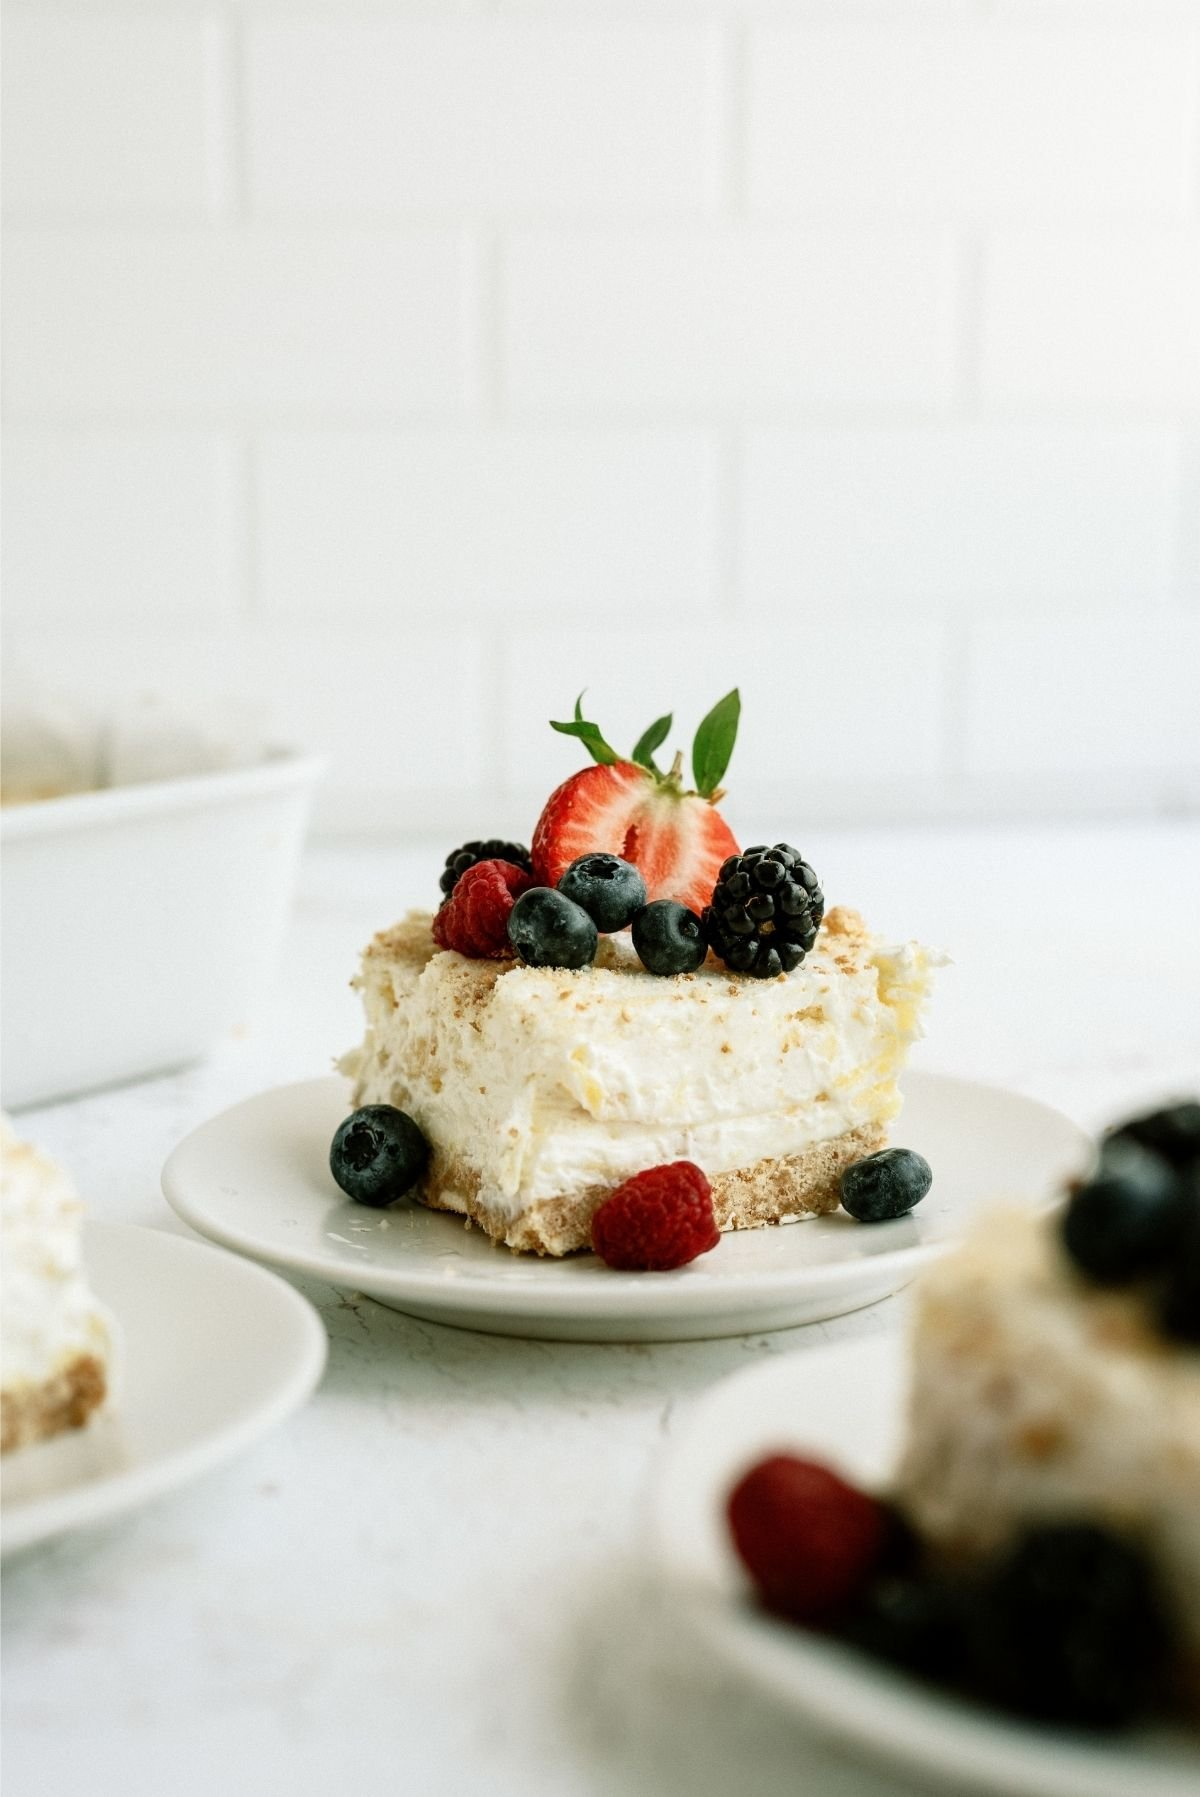 Slice of Fluffy Cream Cheese Dessert on a white plate